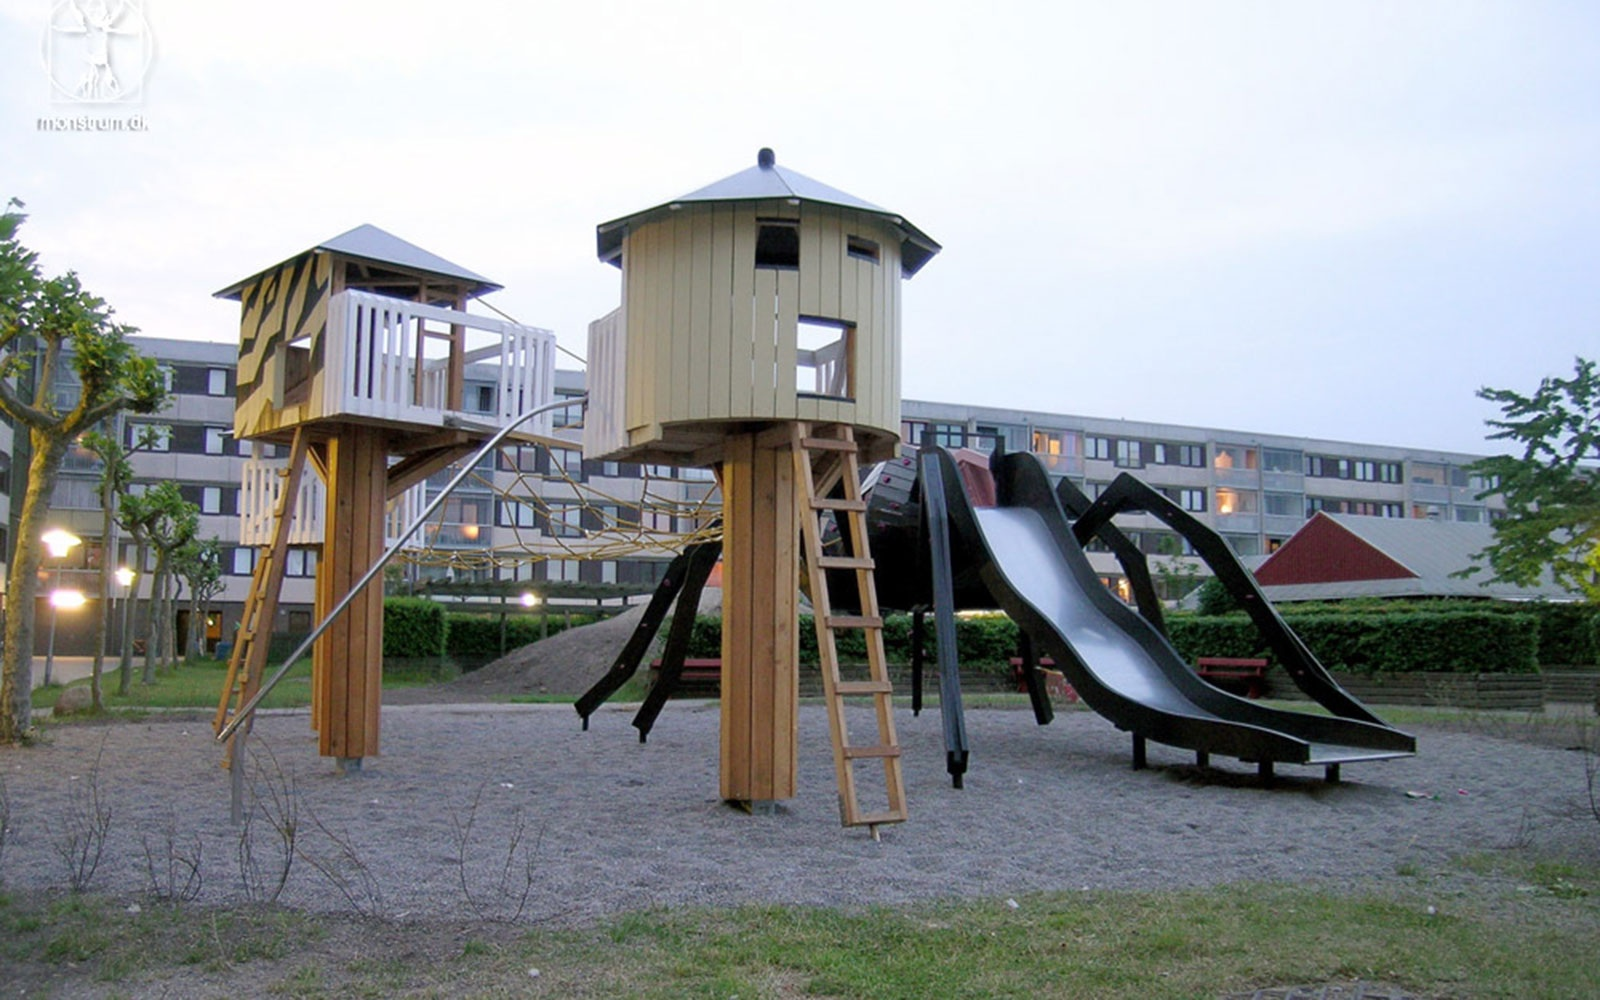 201409-ss-worlds-coolest-playgrounds-copenhagen-spider